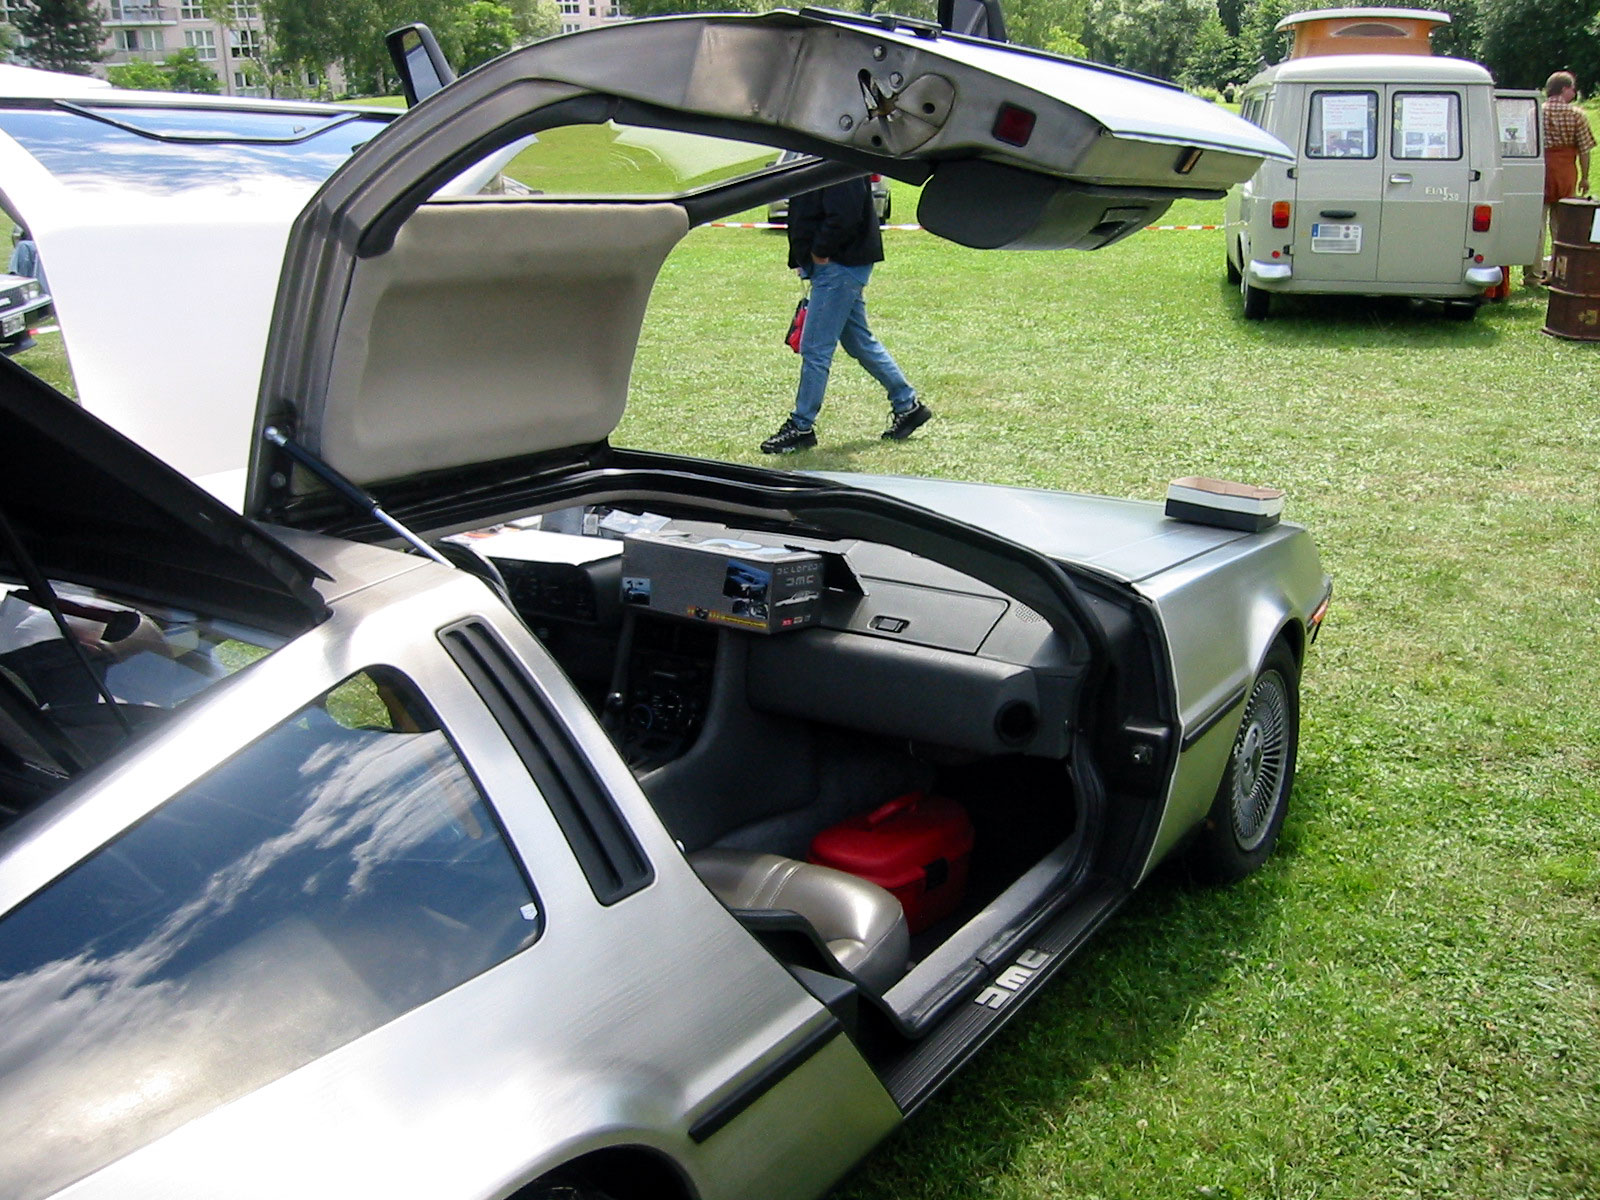 DeLorean Doors